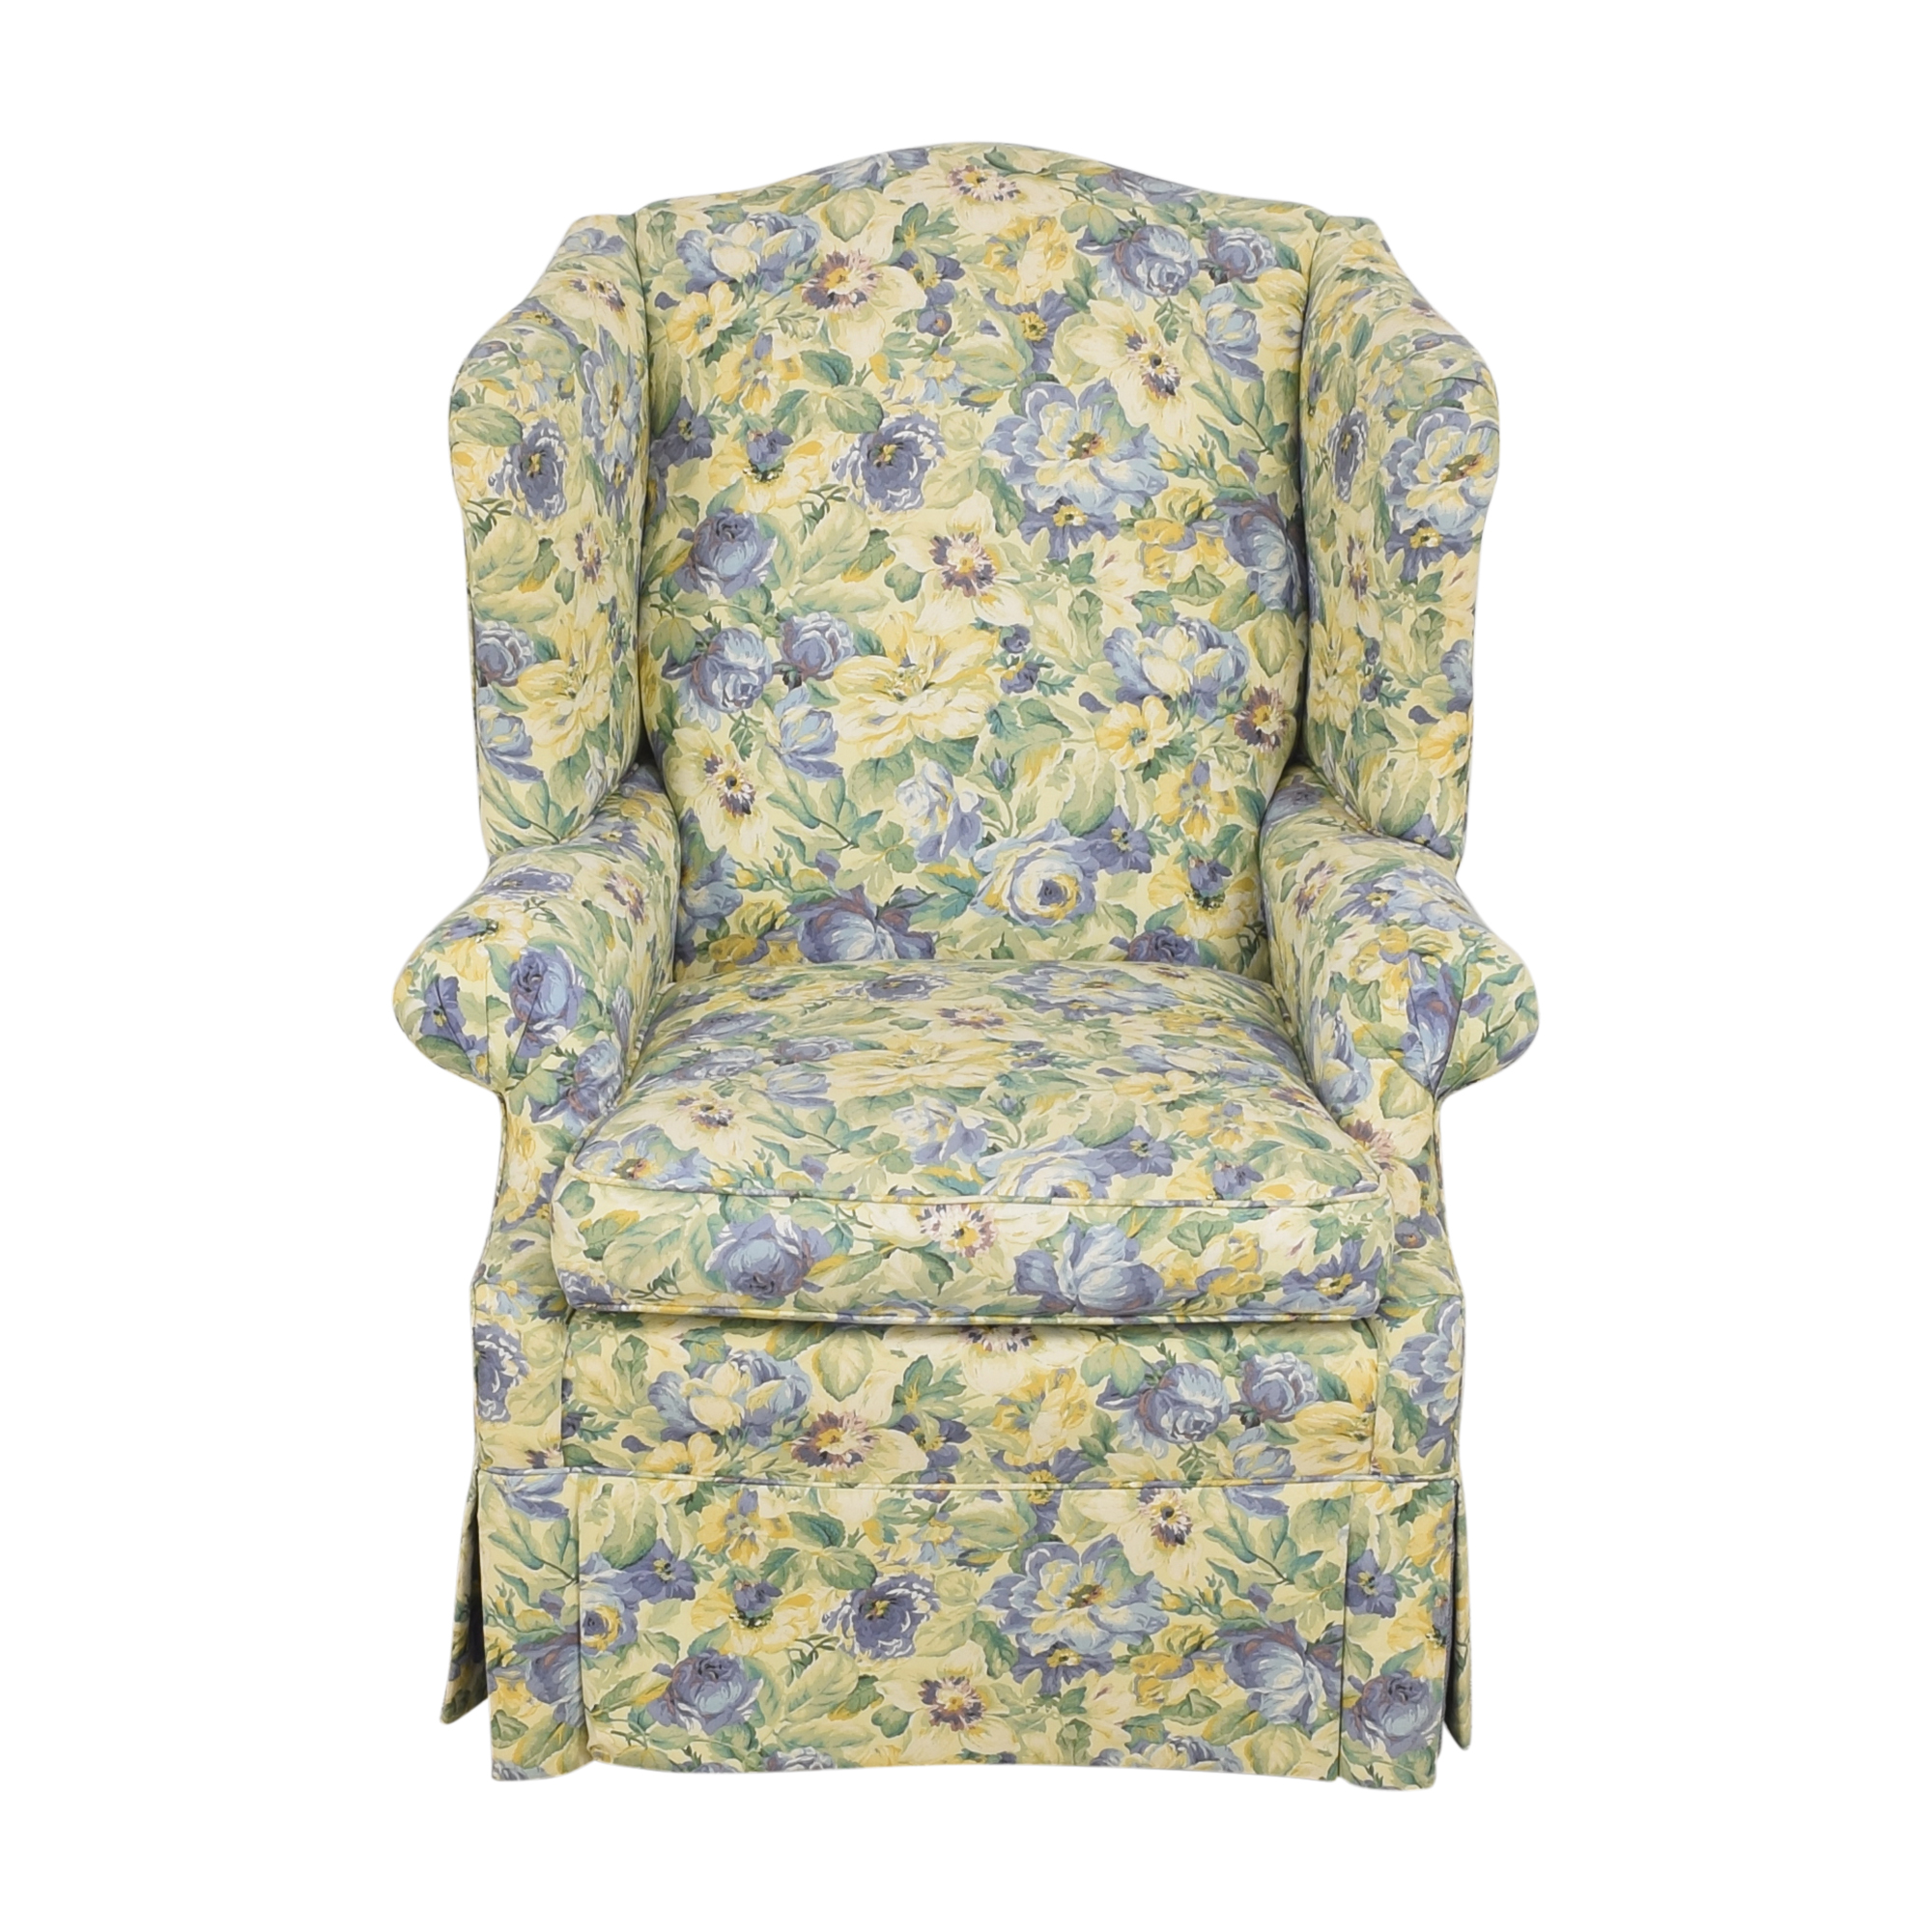 Ethan Allen Ethan Allen Skirted Wing Chair Chairs